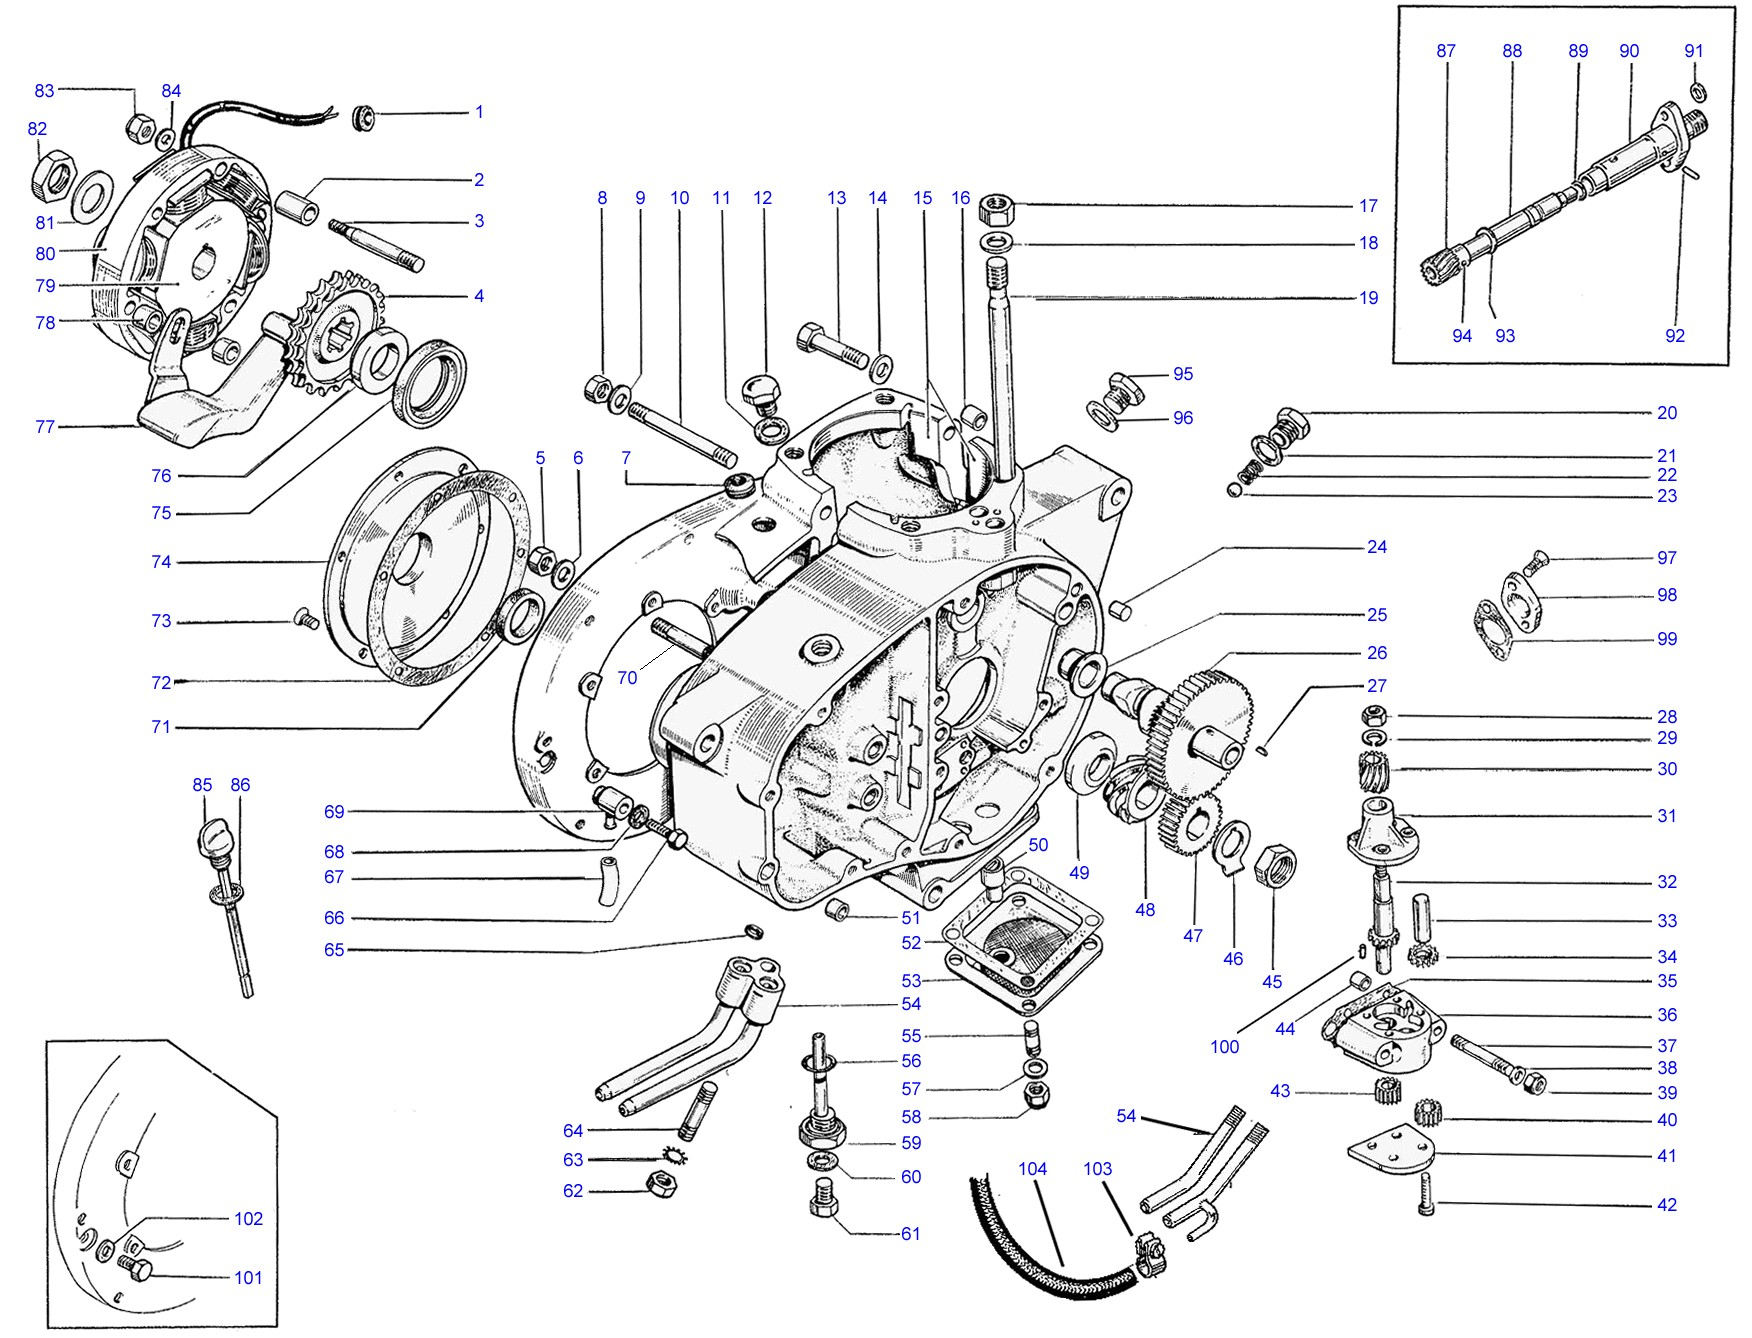 Bsa c15 engine diagram crankcase my wiring diagram bsa c15 engine diagram crankcase of bsa c15 engine diagram crankcase cheapraybanclubmaster Image collections